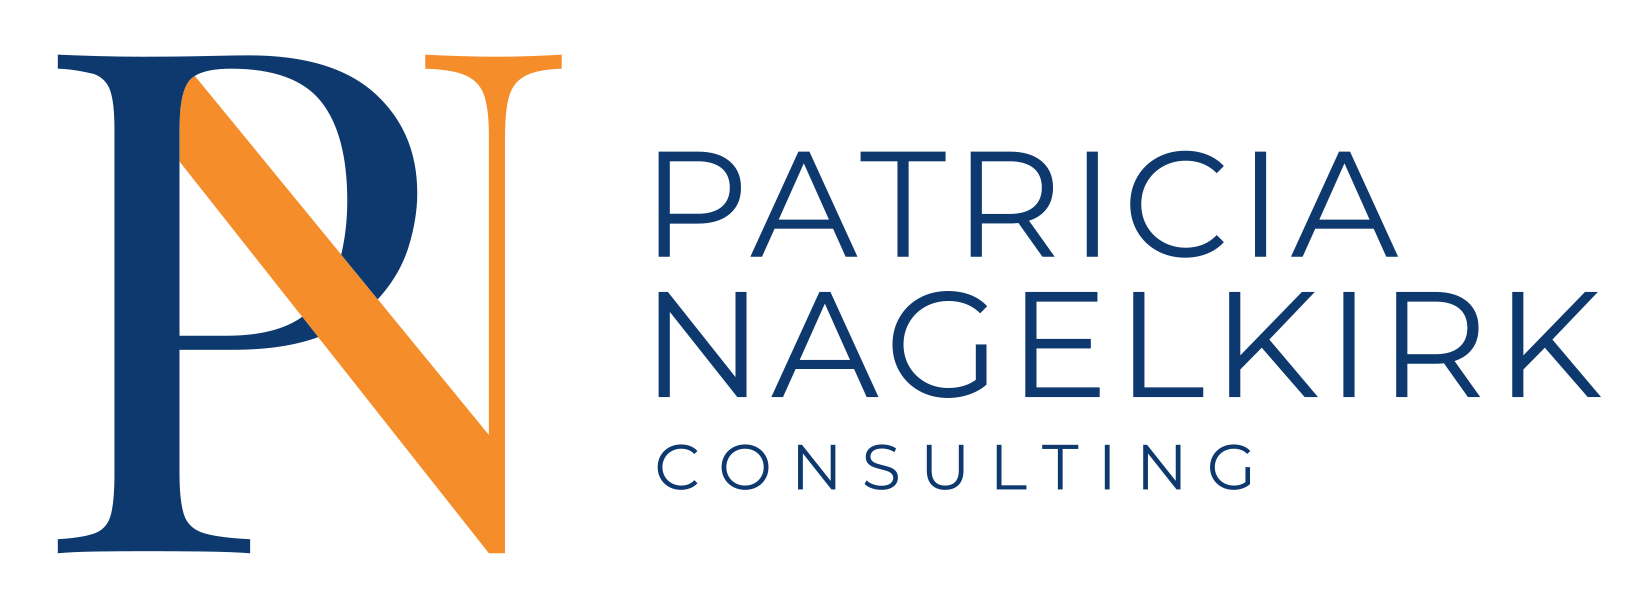 Patricia Nagelkirk Consulting